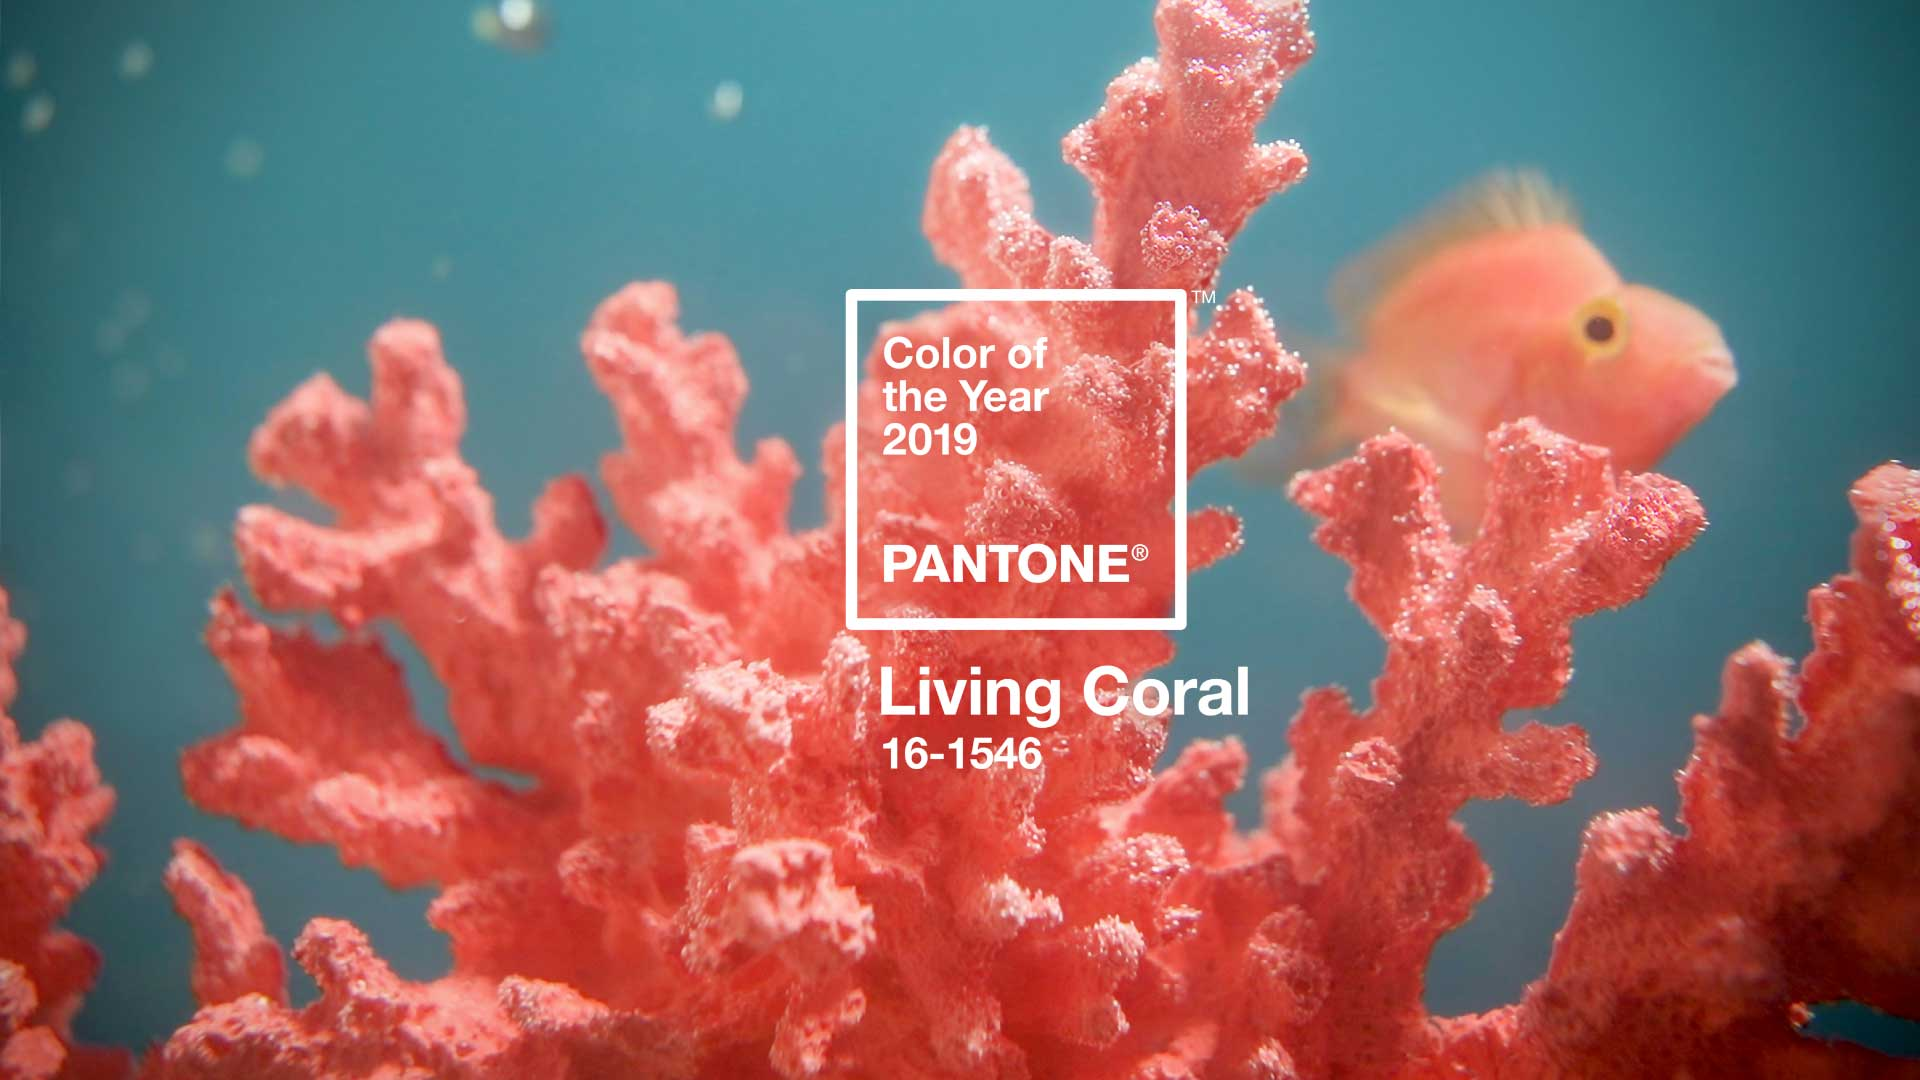 Cor do ano 2019: PANTONE Living Coral 16-1546